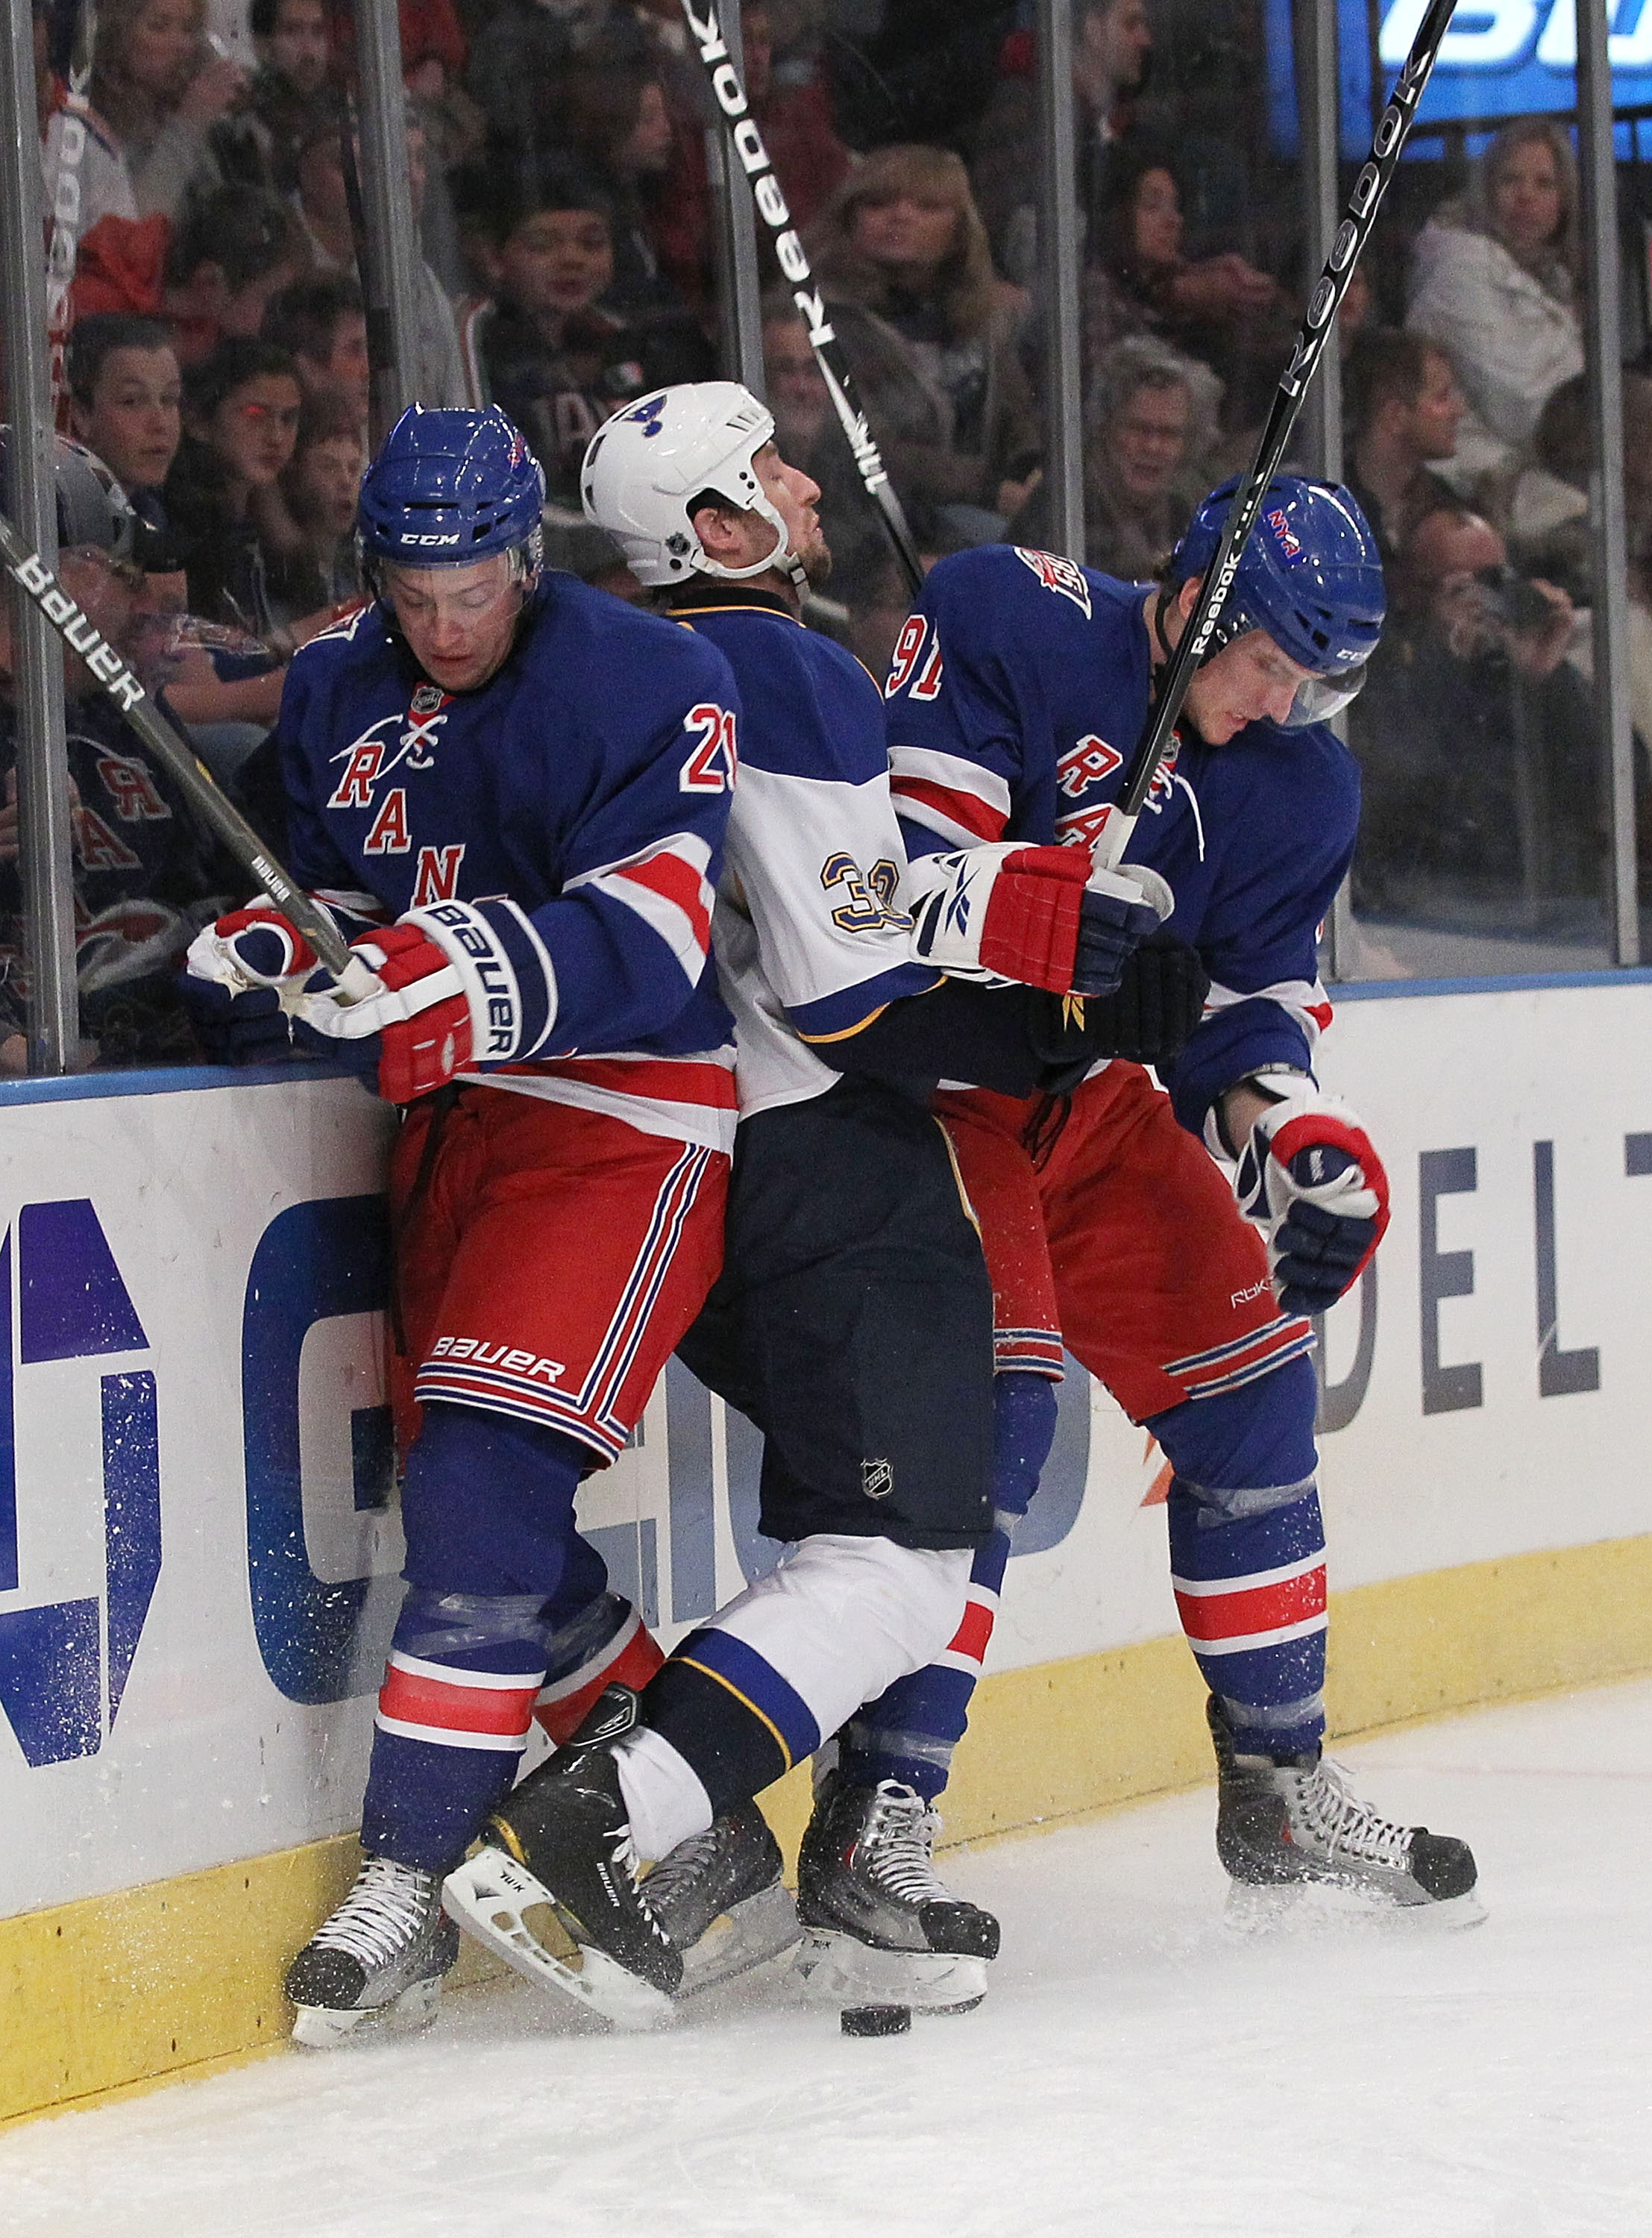 NEW YORK - NOVEMBER 07:  Derek Stephan #21 and Evgeny Grachev #91 of the New York Rangers sandwich Tyson Strachan #33 of the St. Louis Blues during their game on November 7, 2010 at Madison Square Garden in New York City, New York.  (Photo by Al Bello/Get